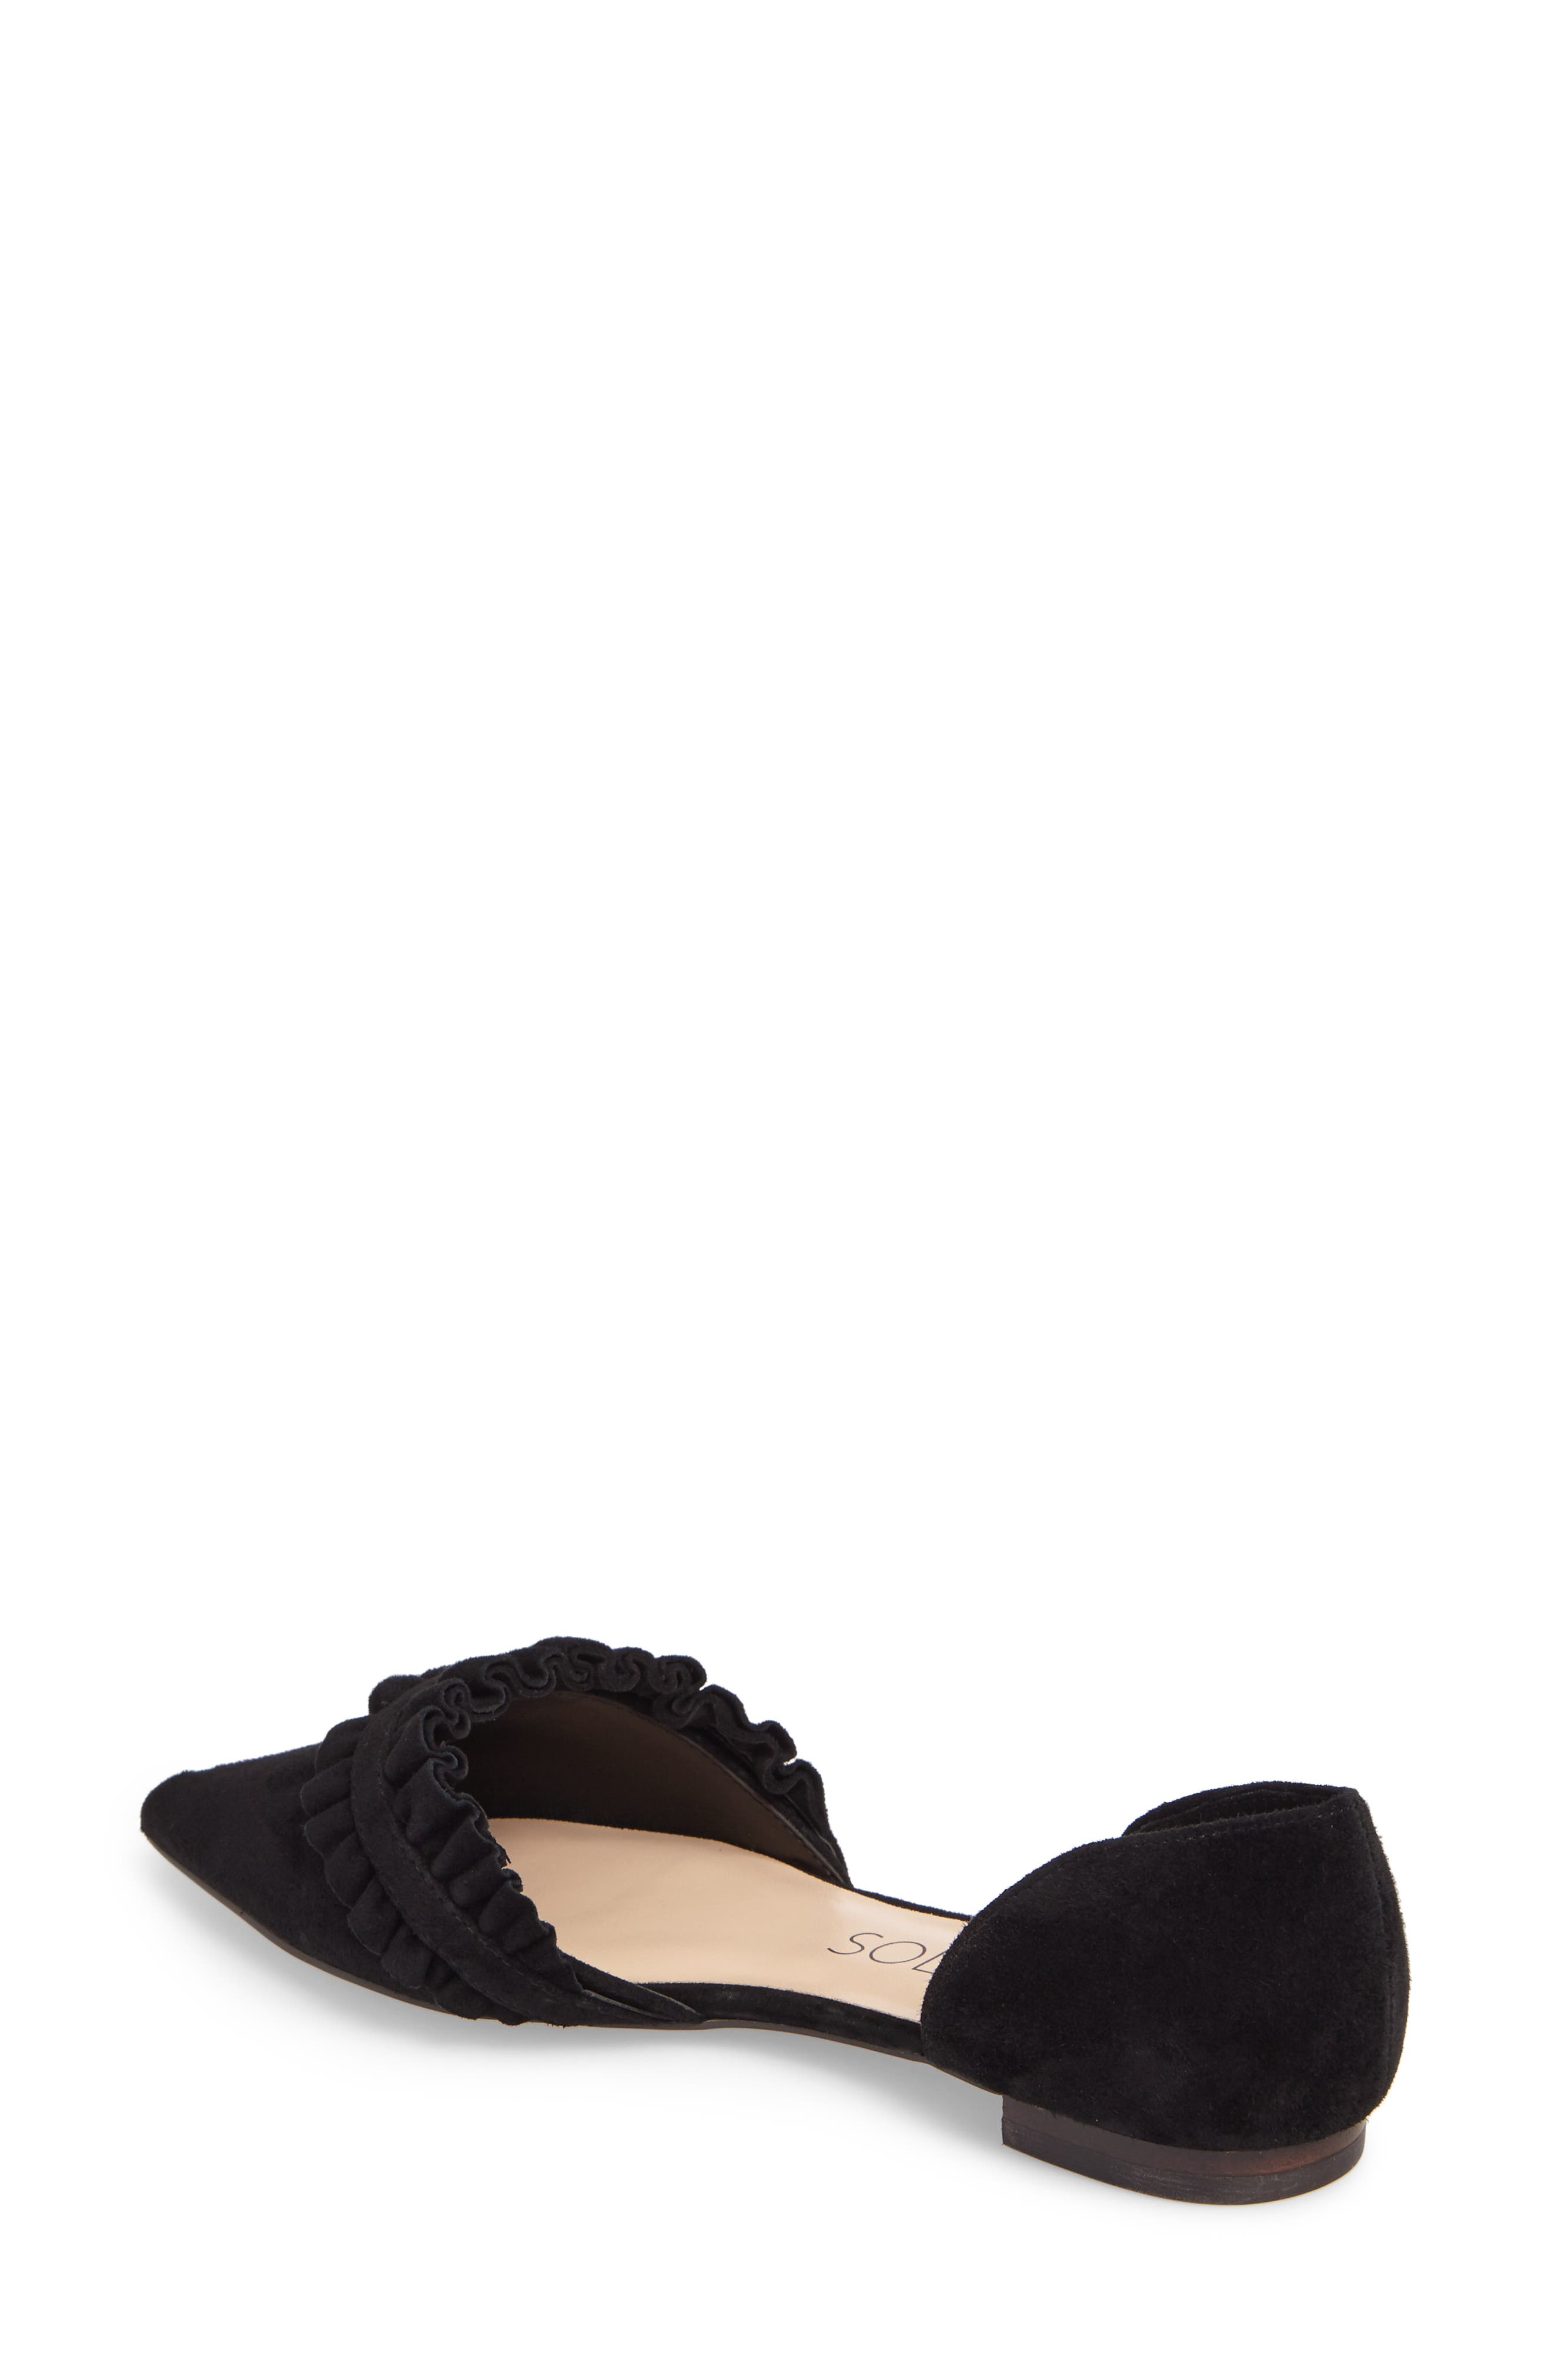 SOLE SOCIETY, Rosalind Ruffle d'Orsay Flat, Alternate thumbnail 2, color, 001